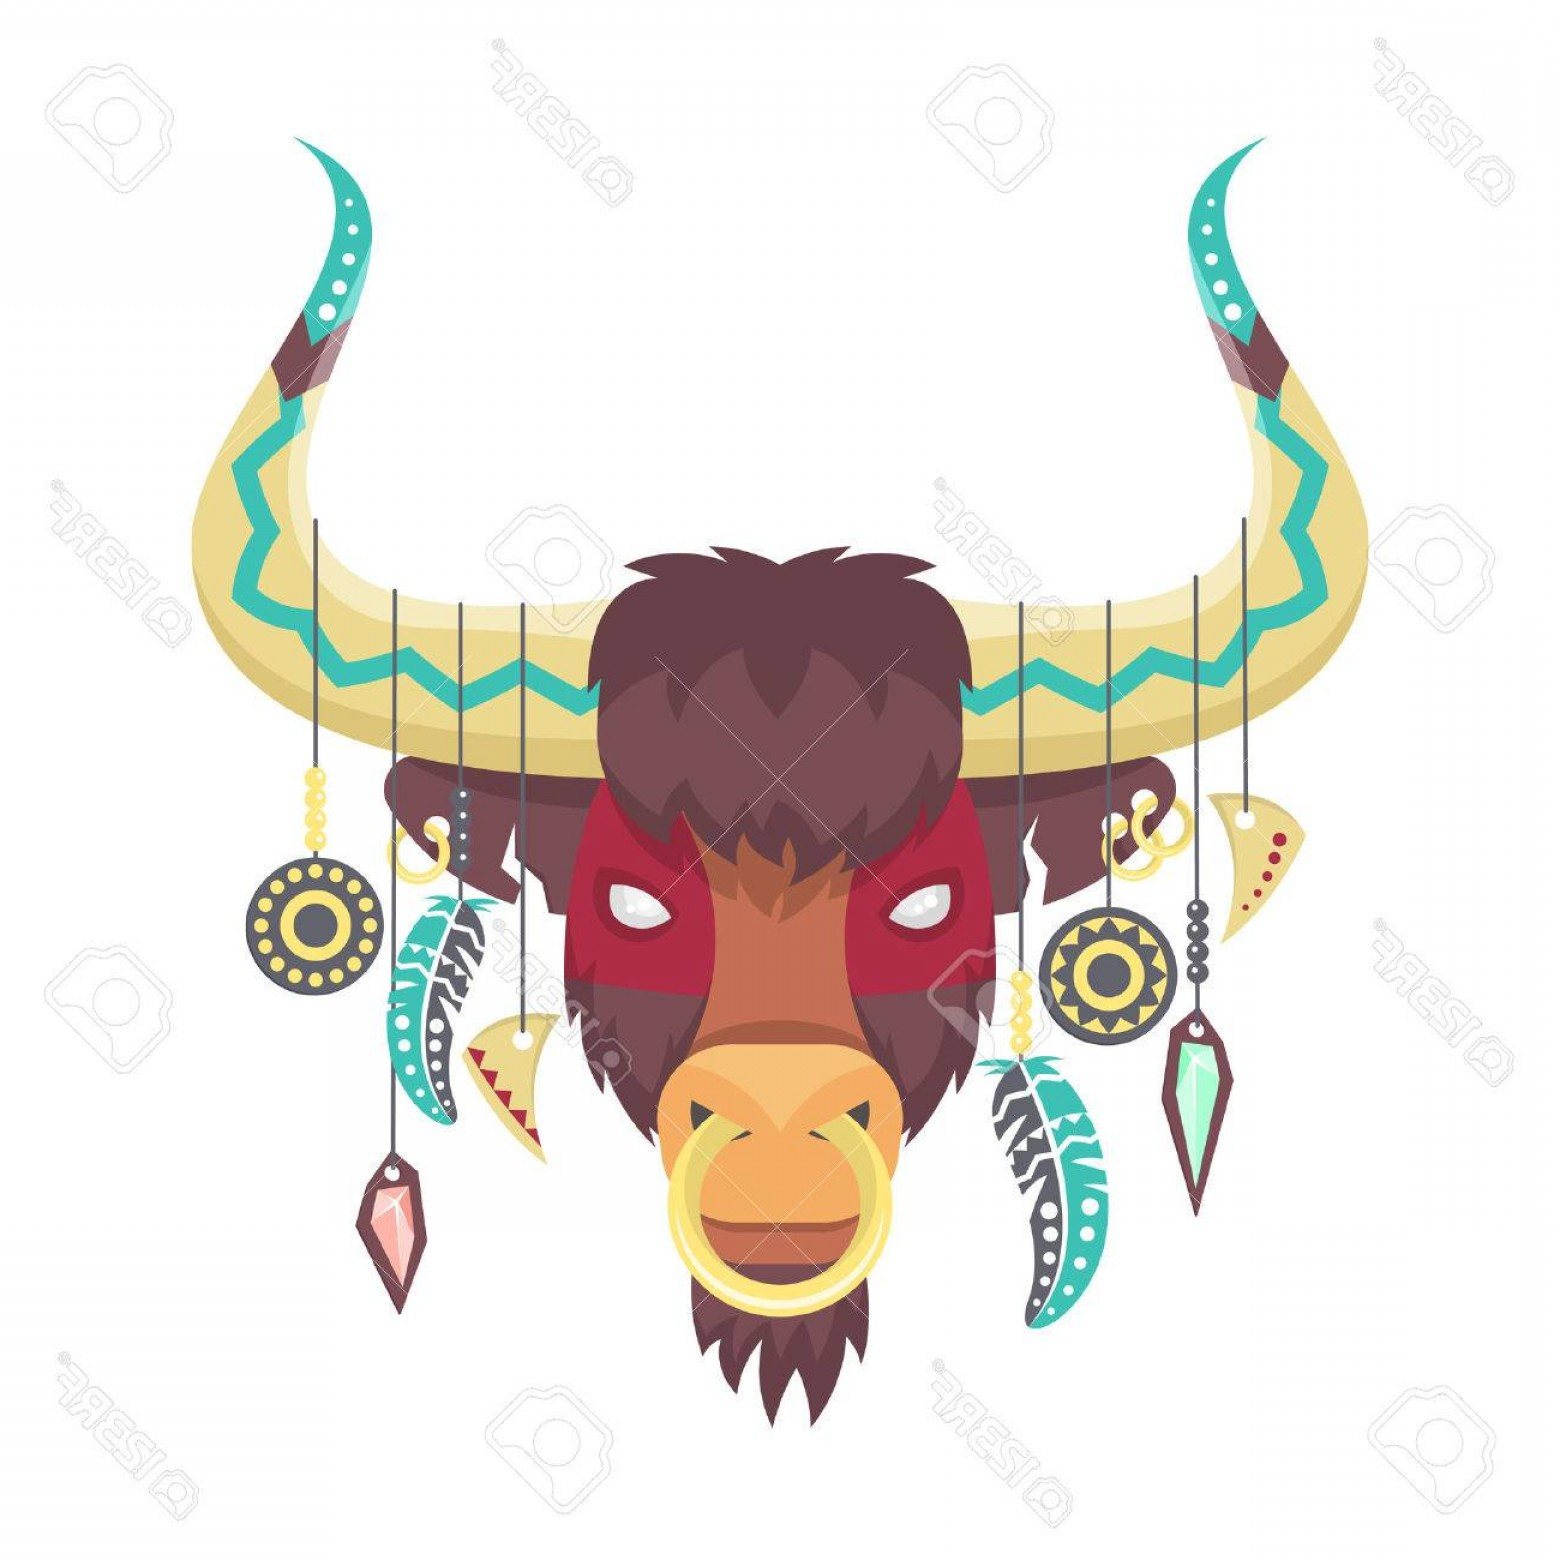 Ox Vector: Photostock Vector Vector Illustration Of Bull Or Ox In Ethnic Or Tribal Style Animal Totem Bull Print For T Shirt Vect